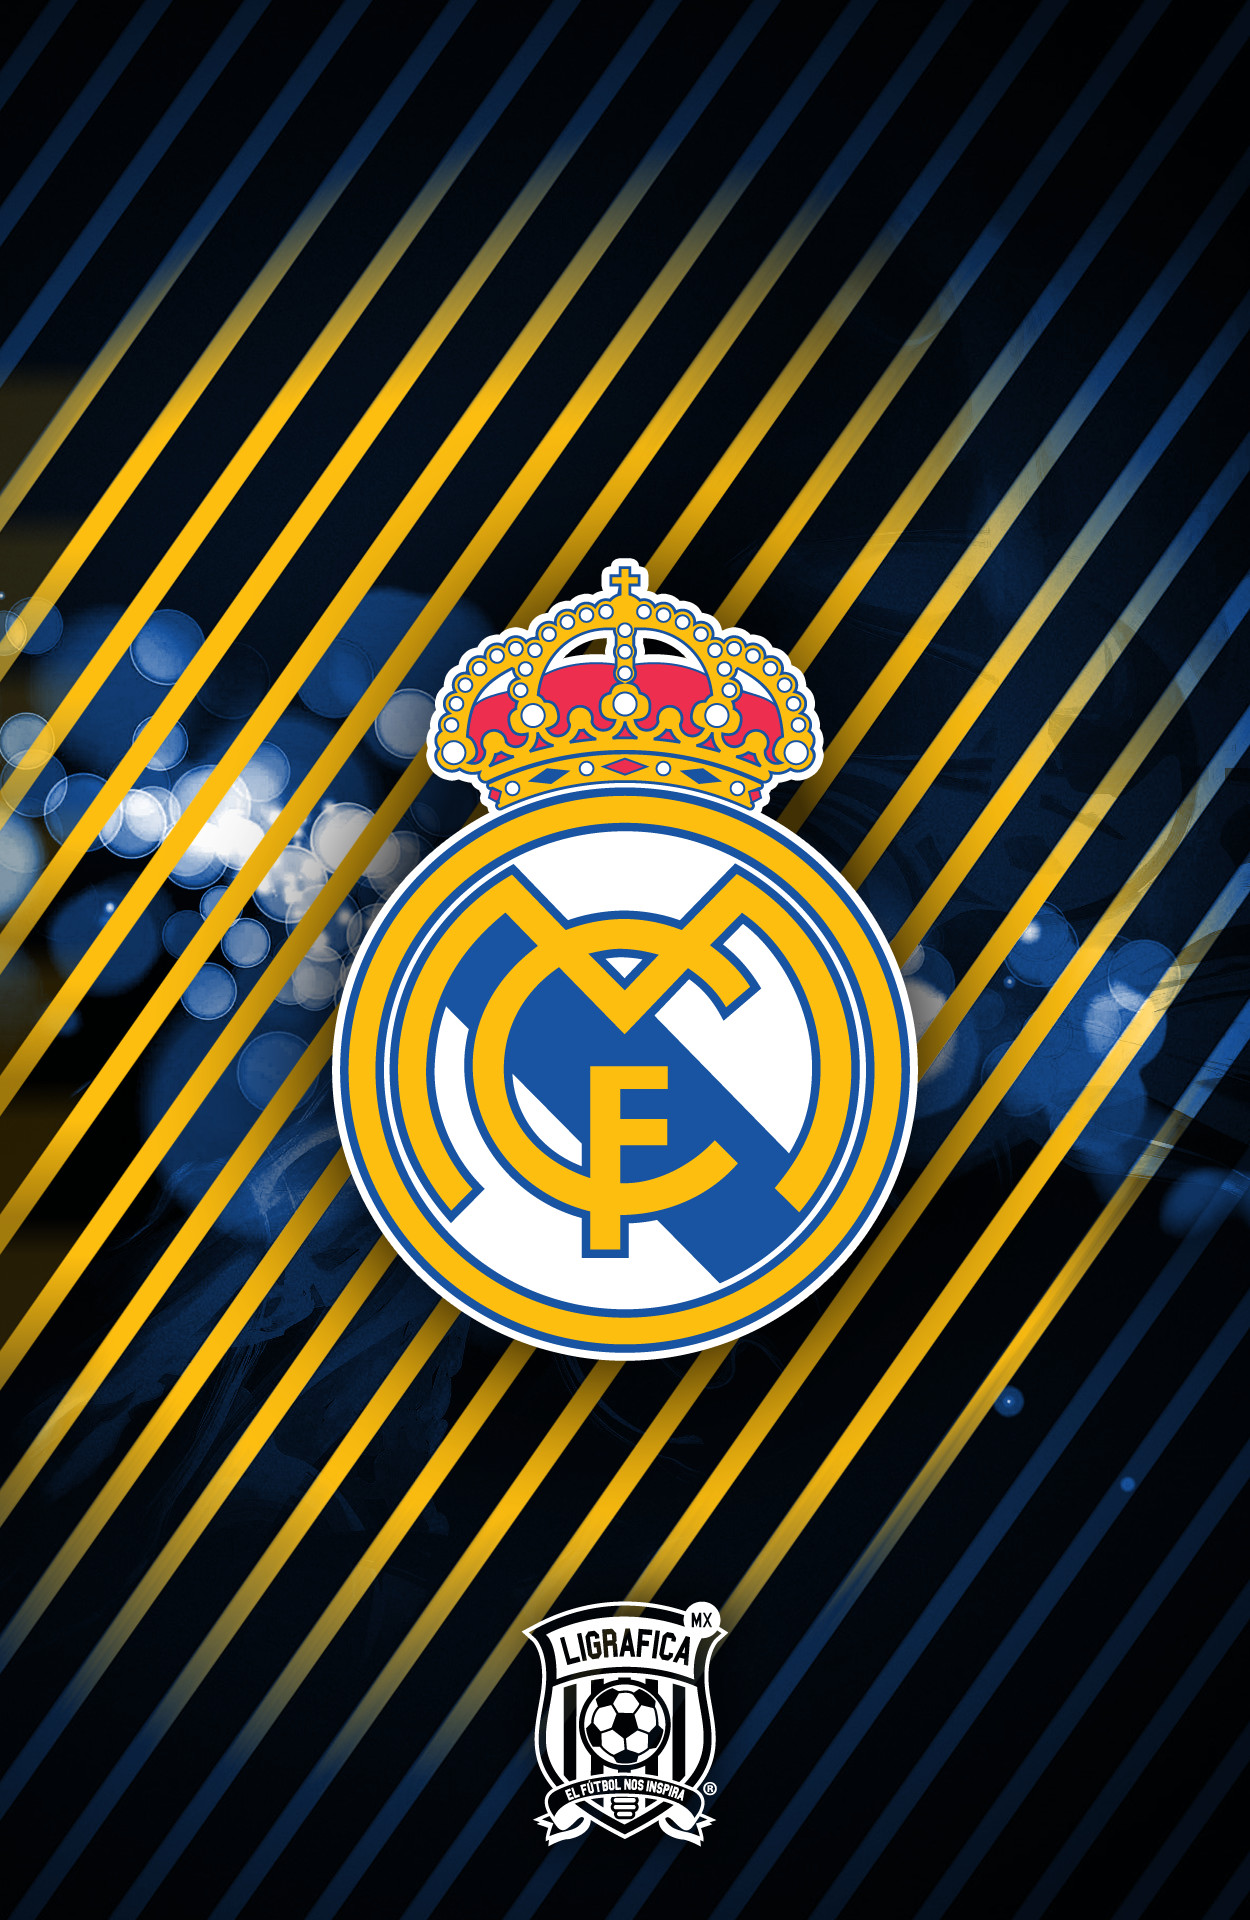 Wallpaper images) (72+ Madrid 3D 2018 Real